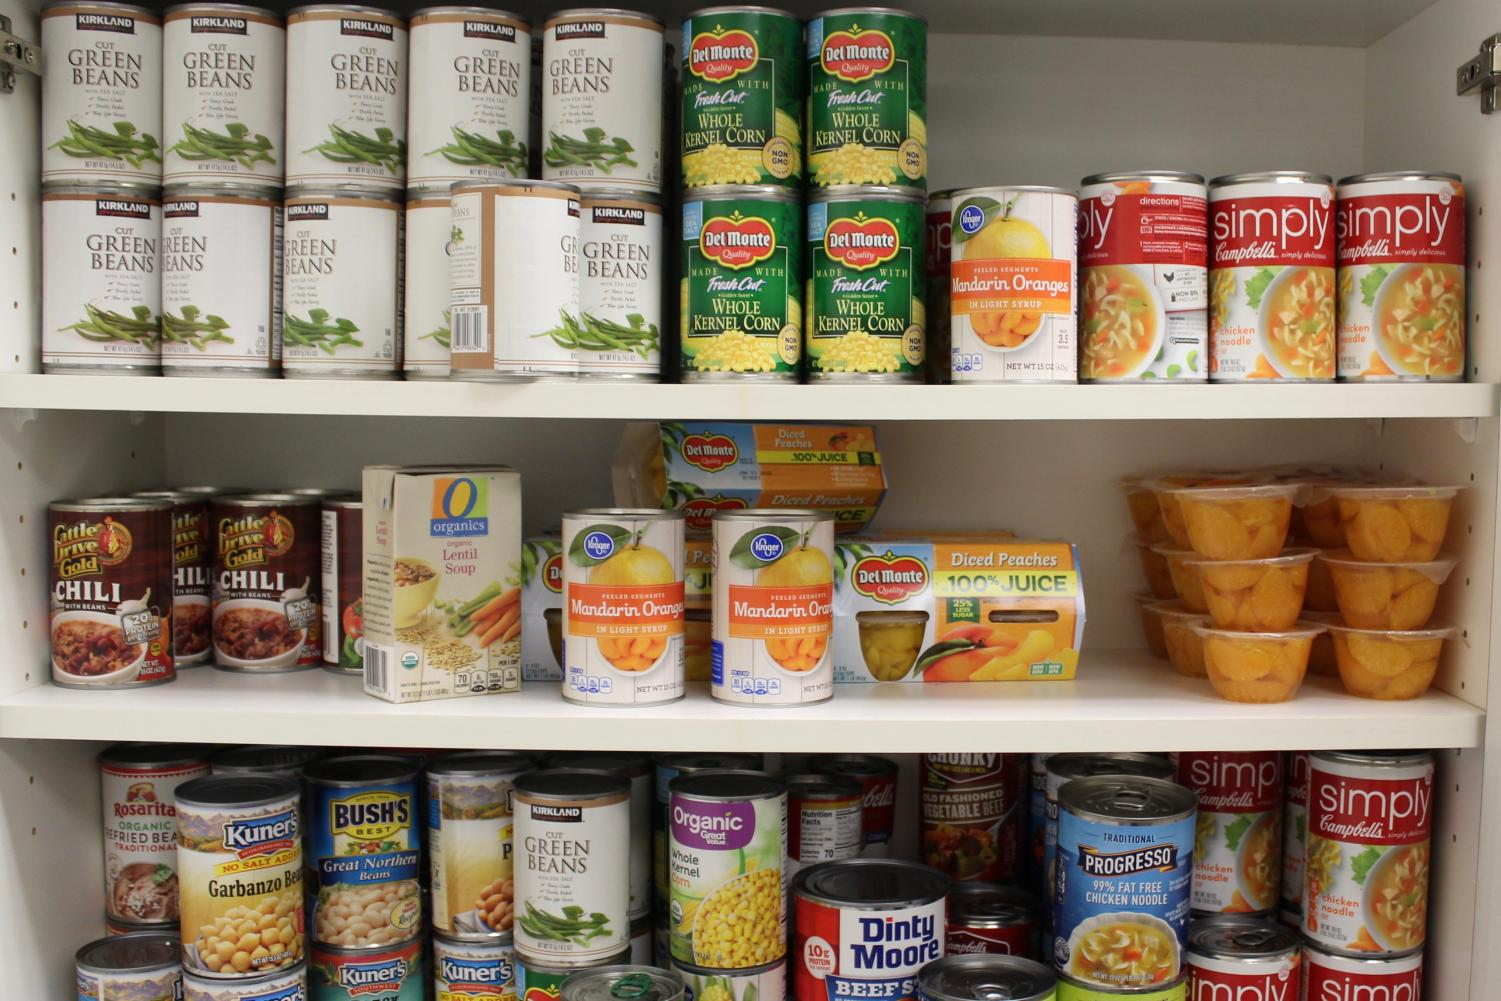 Nonperishable food fills the shelves in the new student food pantry at Arapahoe Community College in Littleton, Colo. on Sept. 11, 2018.